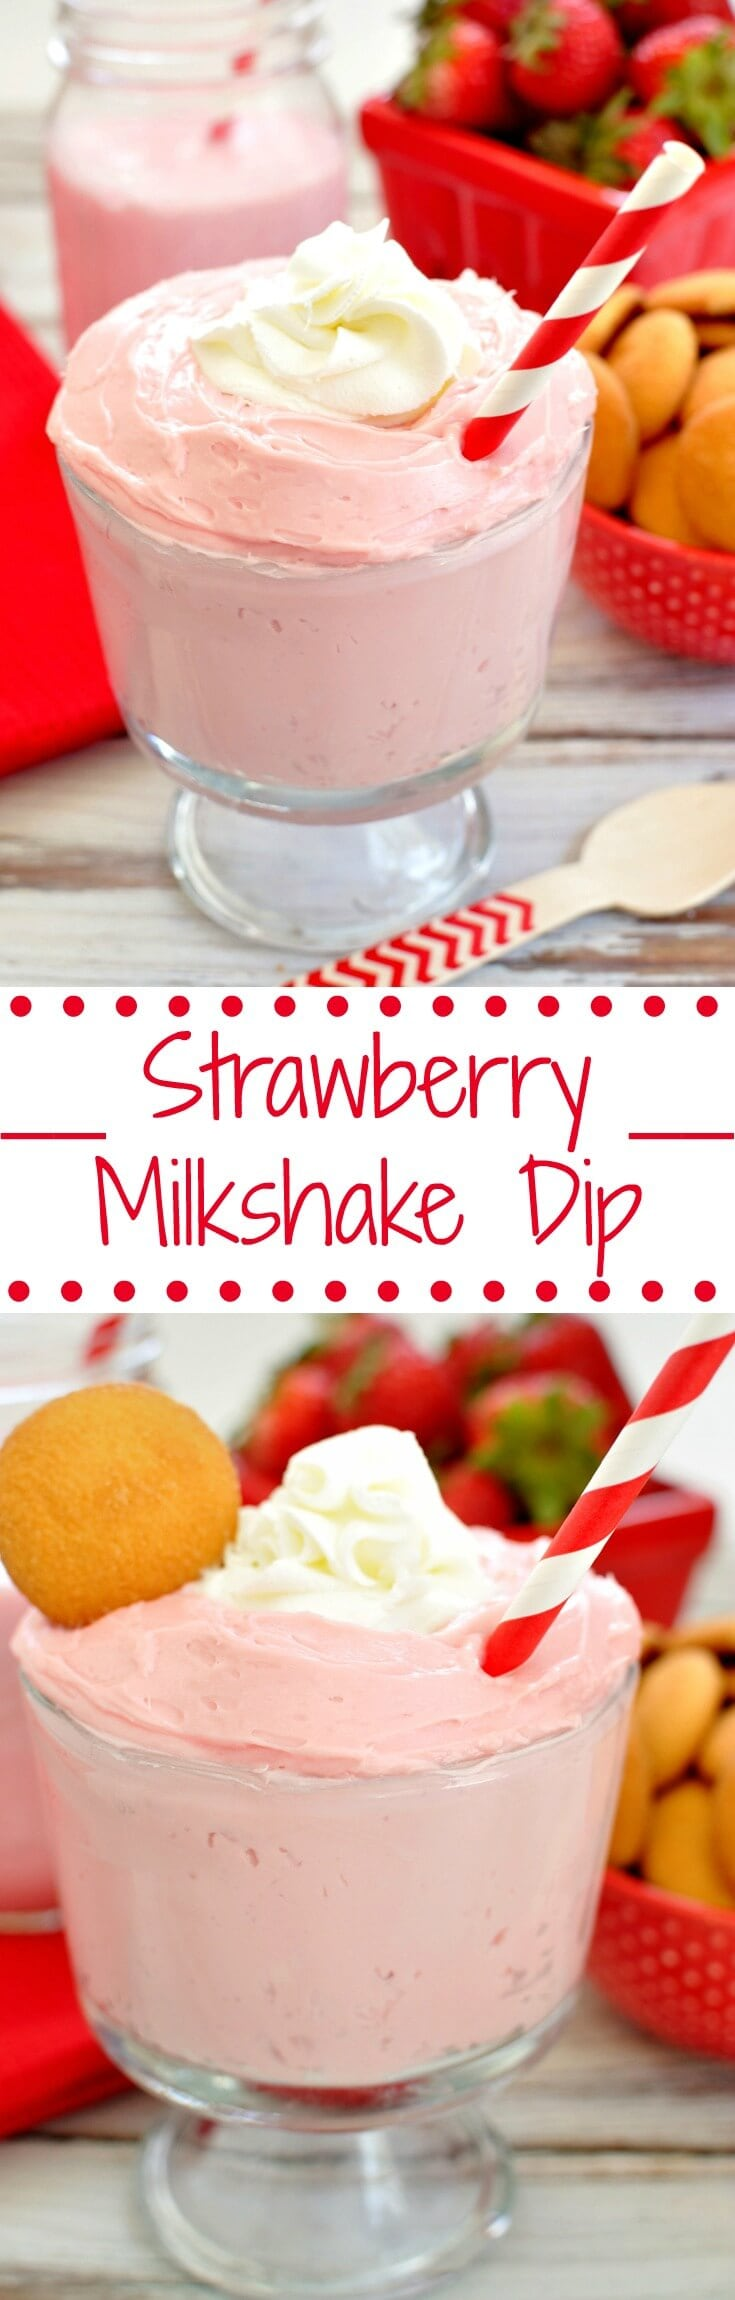 strawberry-milkshake-dip-pinterest